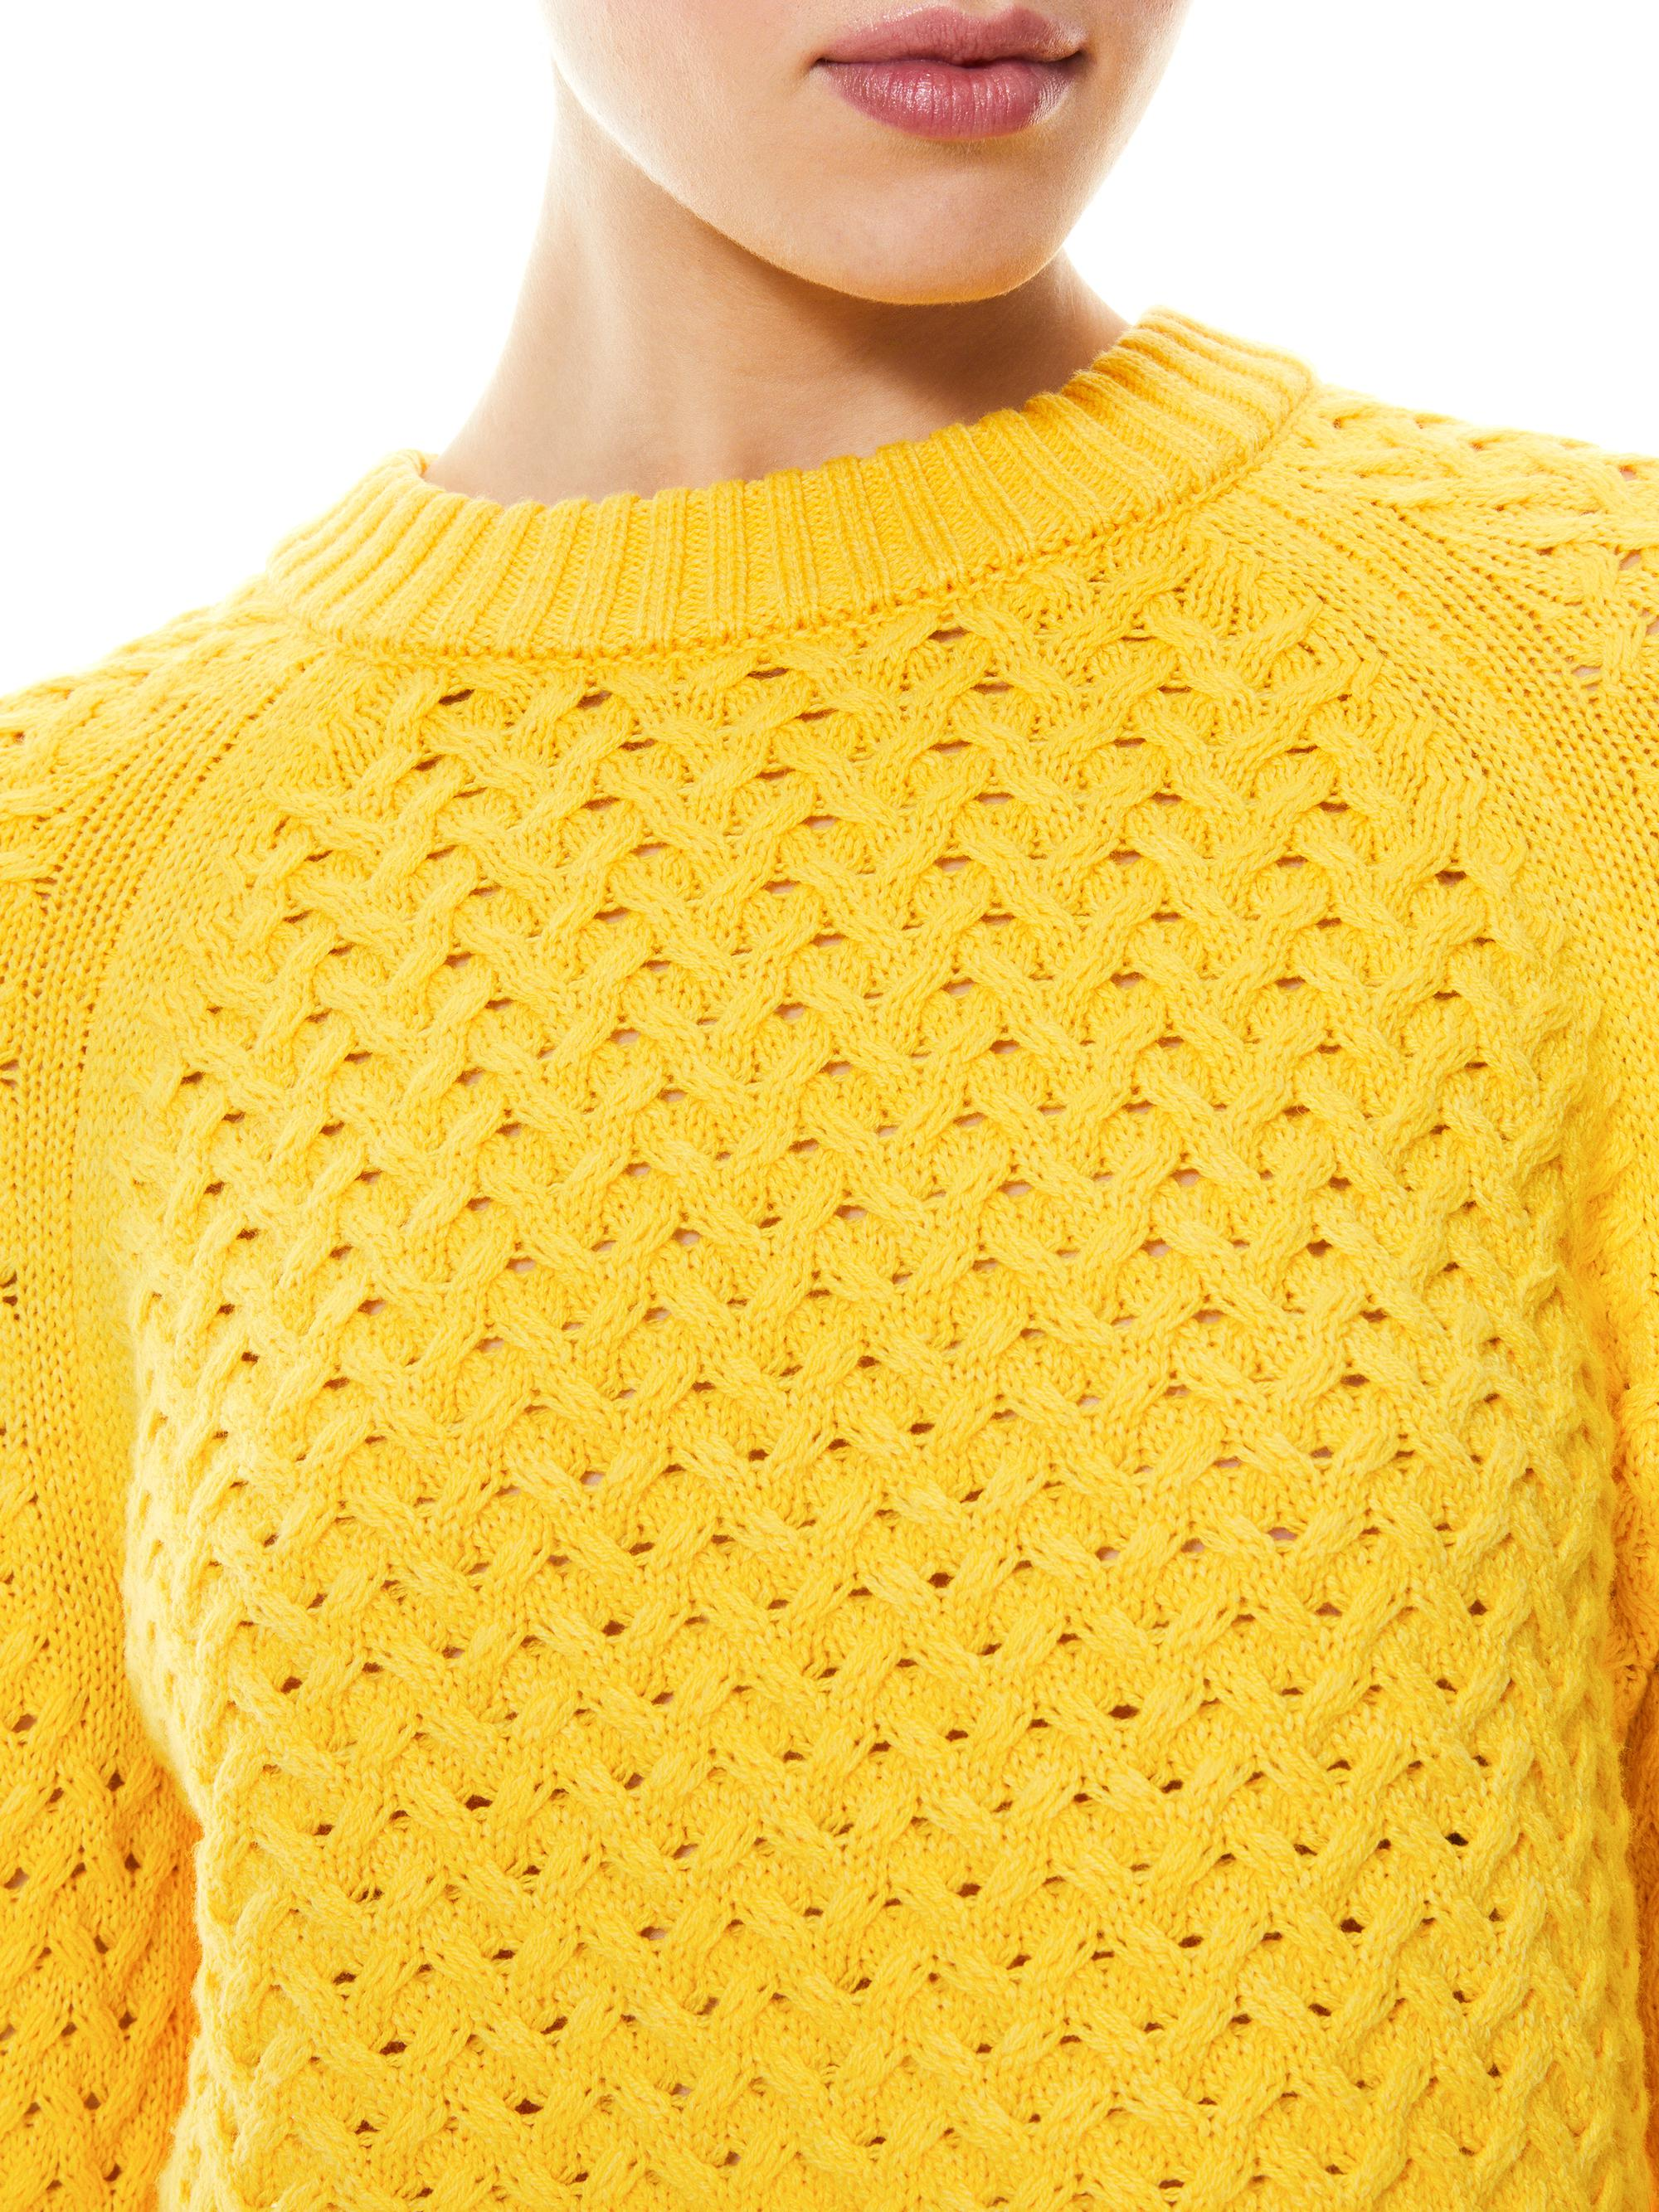 LETA CROPPED PULLOVER 6